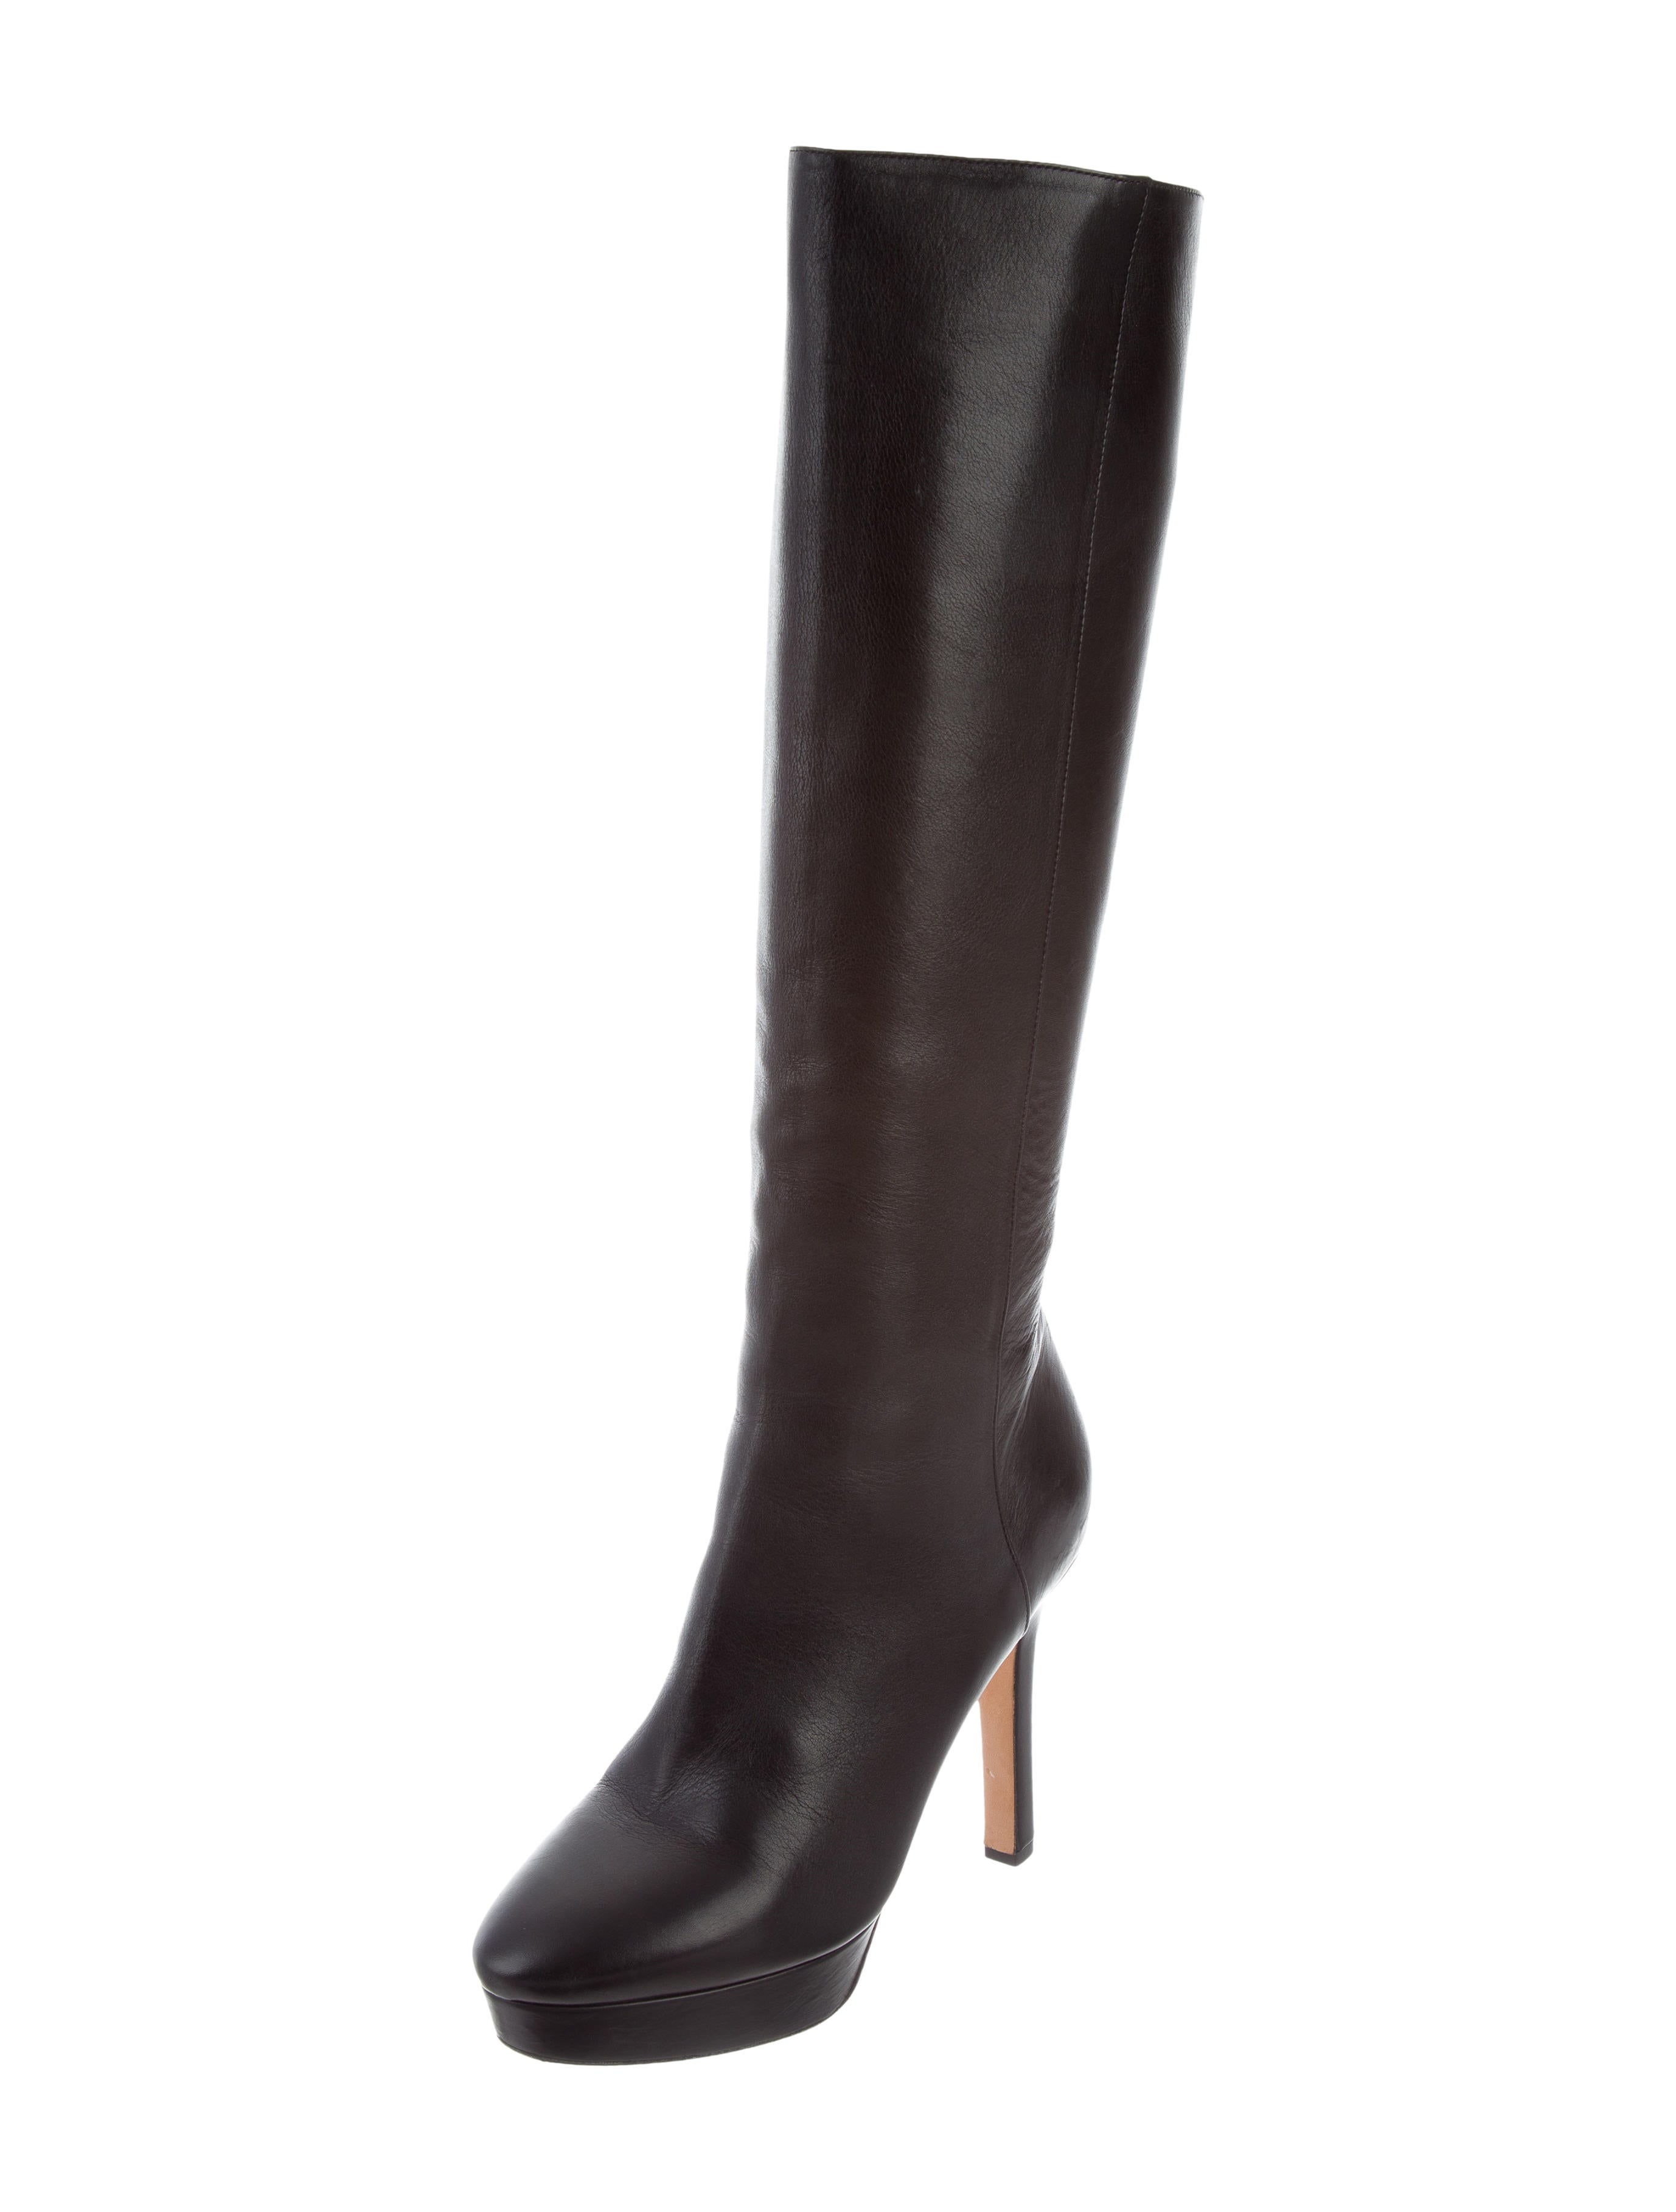 Top colors For over the knee platform boots Black over the knee platform boots Silver over the knee platform boots Gray over the knee platform boots Brown over the knee platform boots Over The Knee Platform Boots + Save this search Showing over the knee platform boots 10% off for.